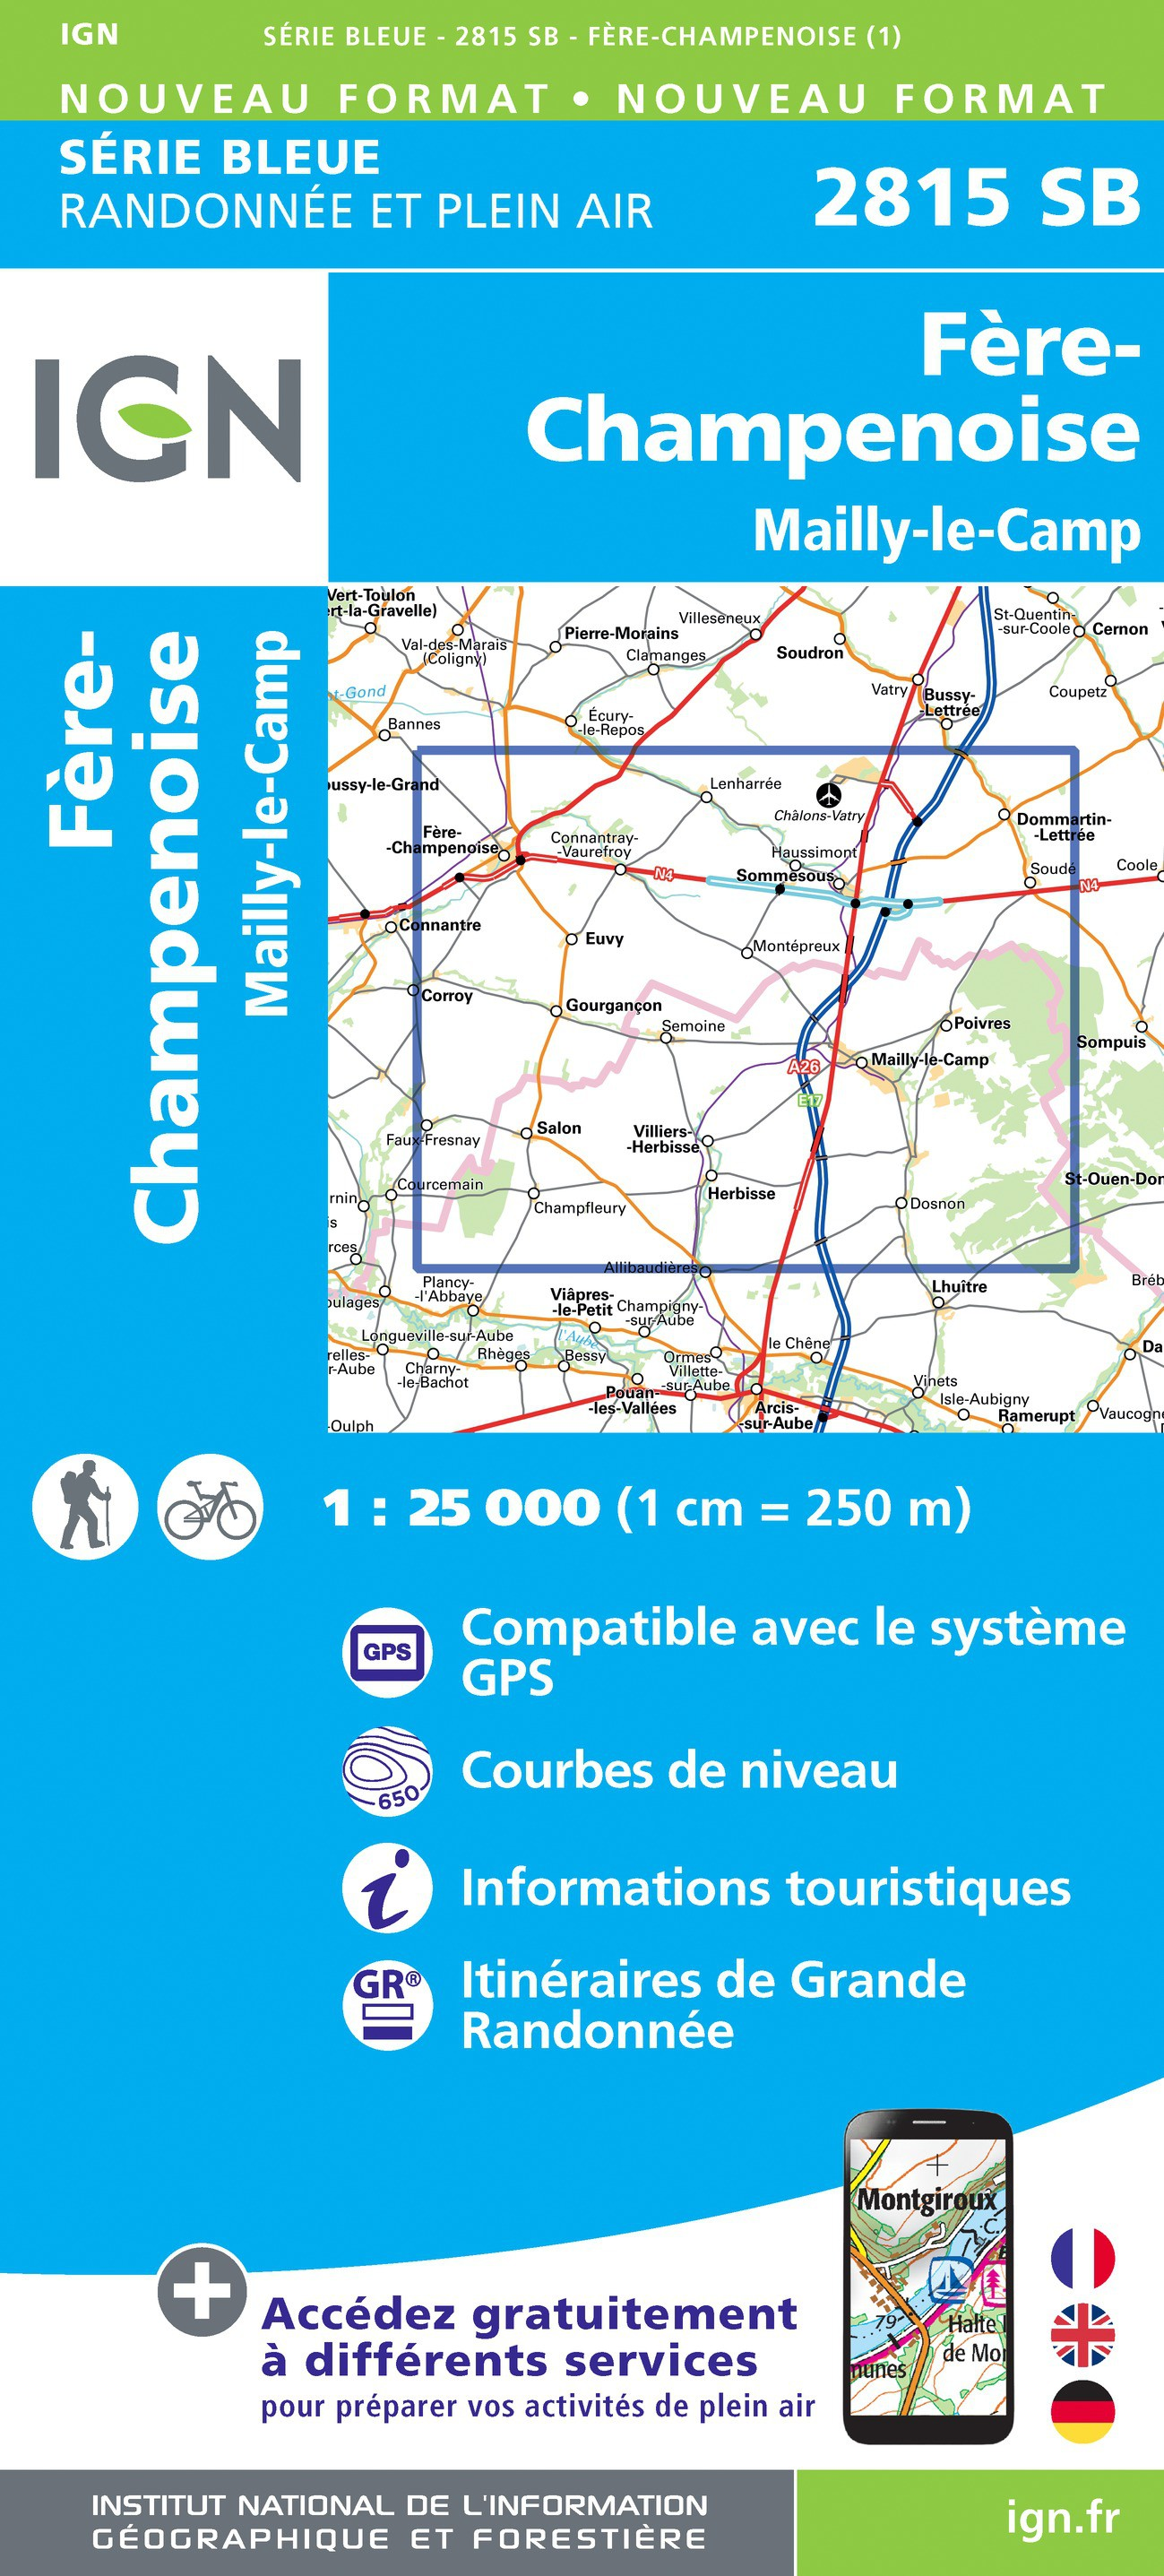 FERE-CHAMPENOISE - MAILLY-LE-CAMP